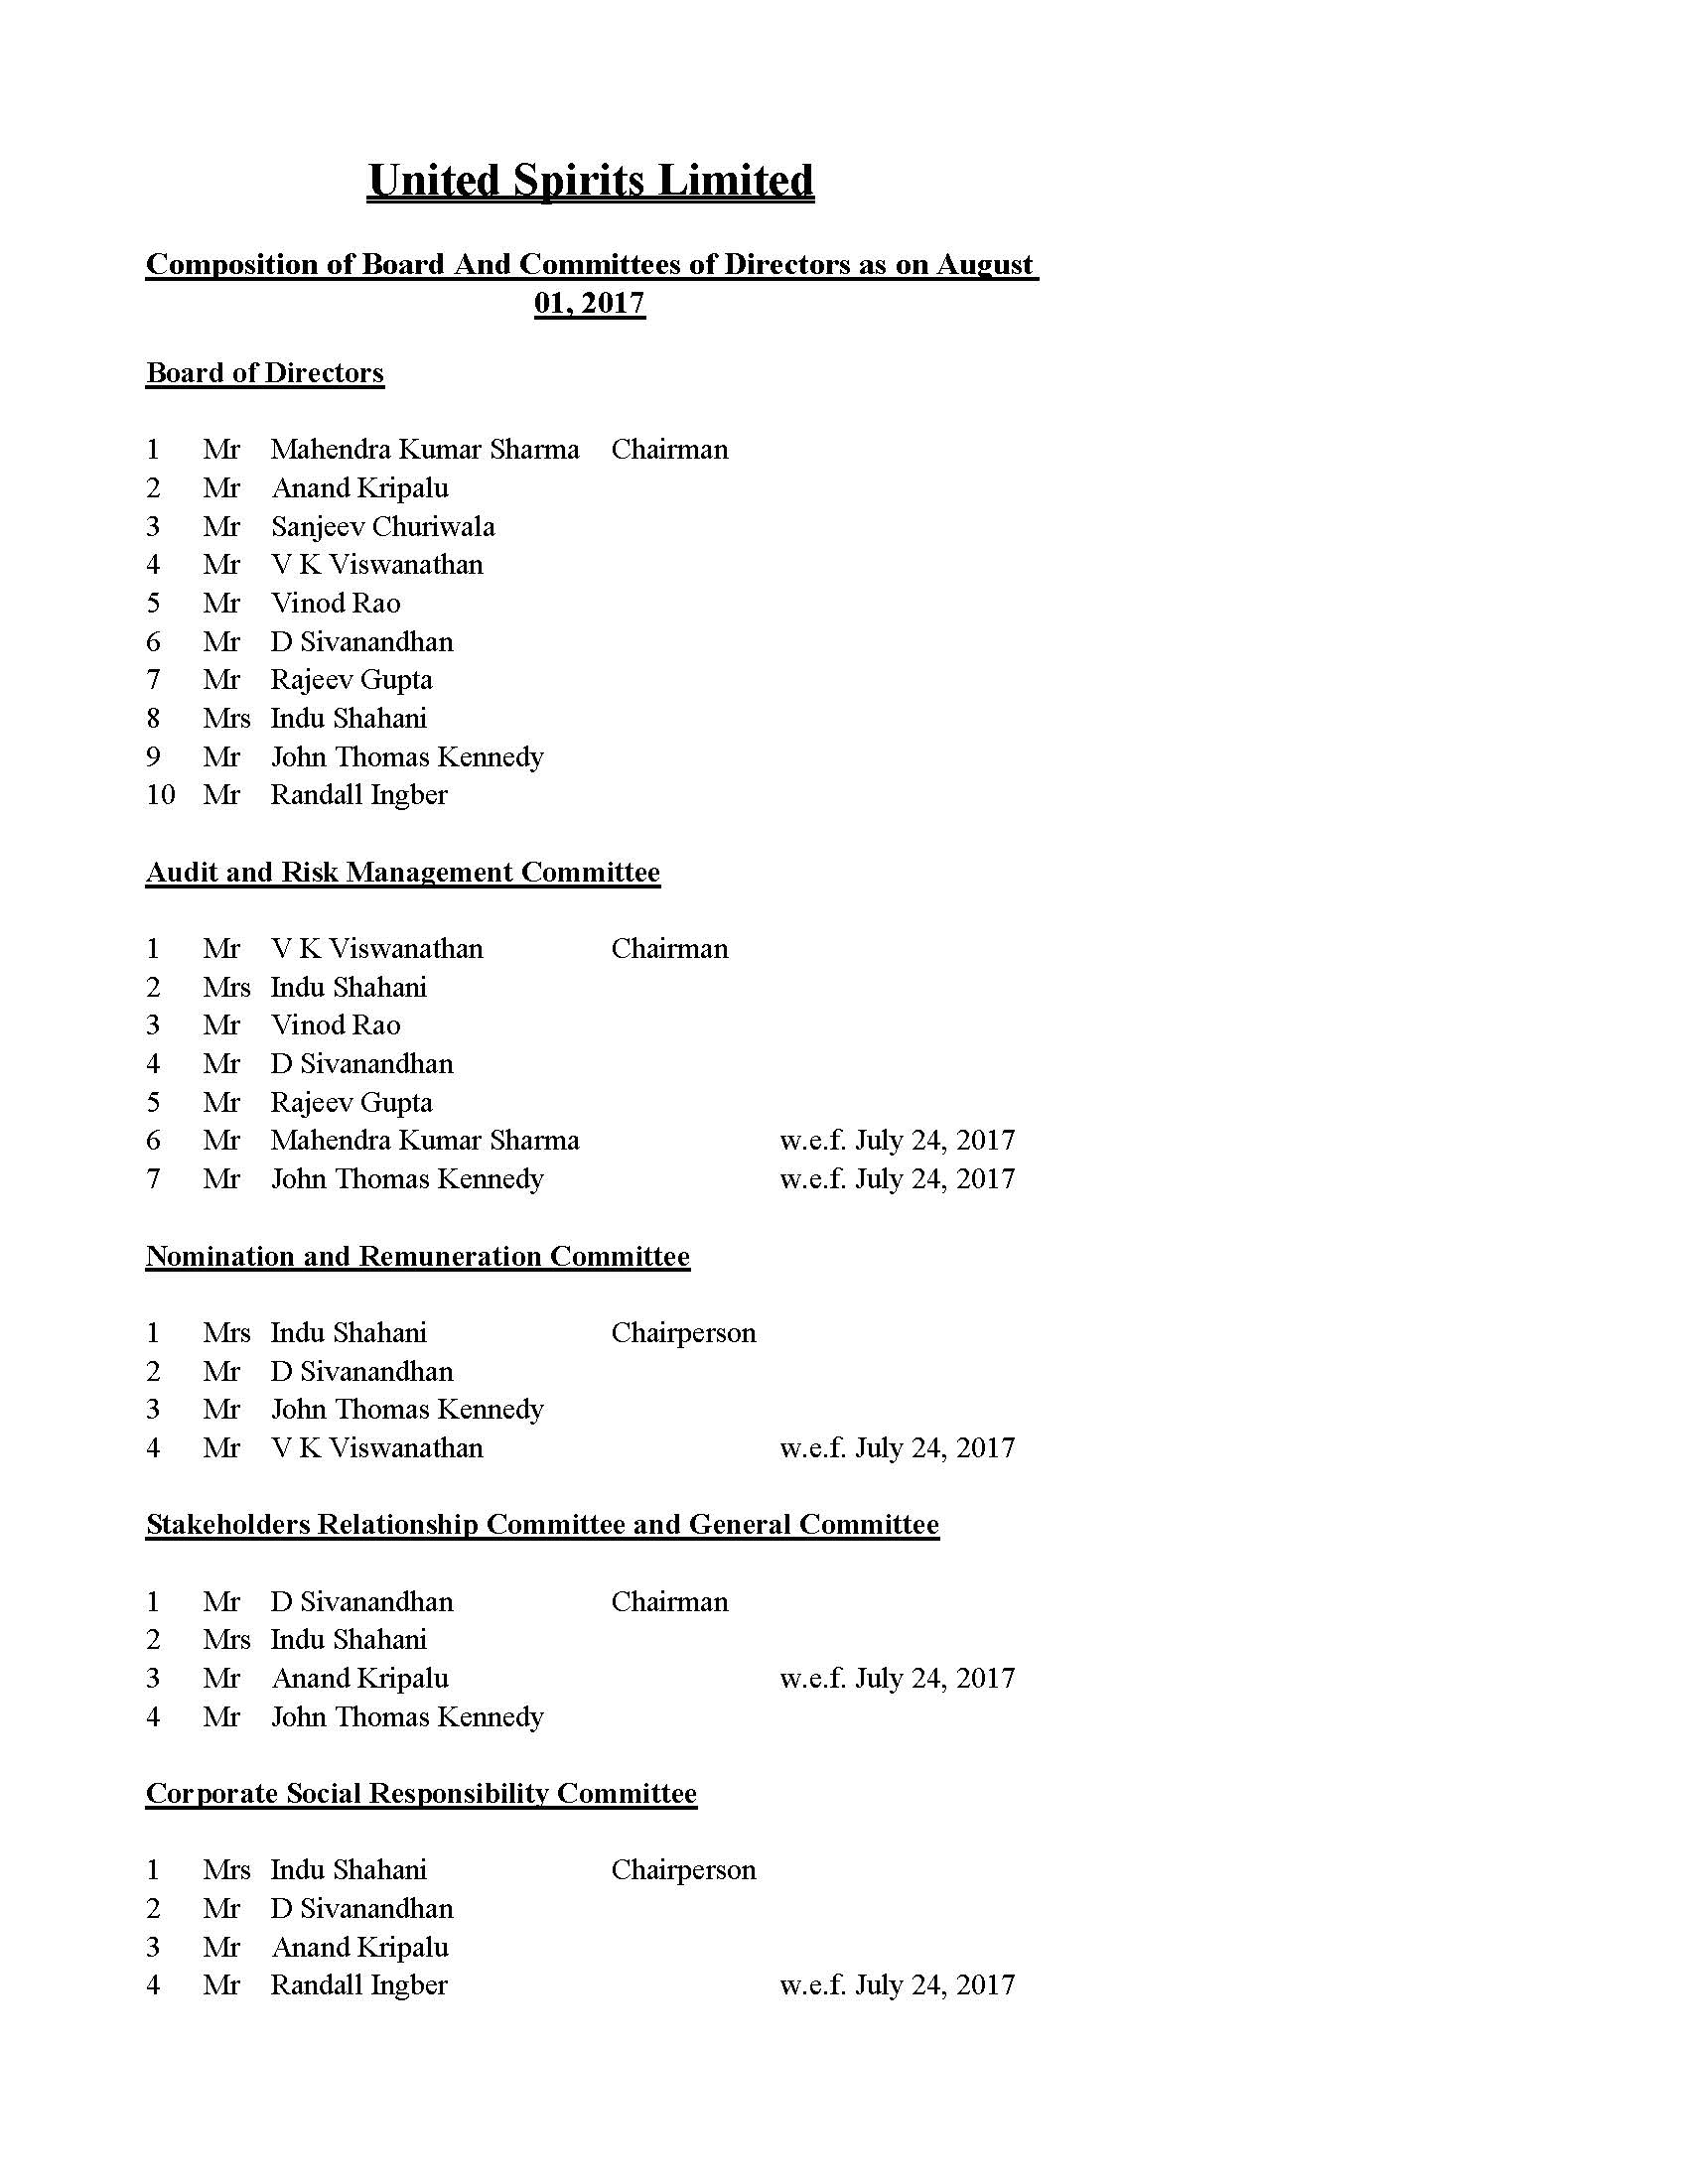 Committees of Board of Directors